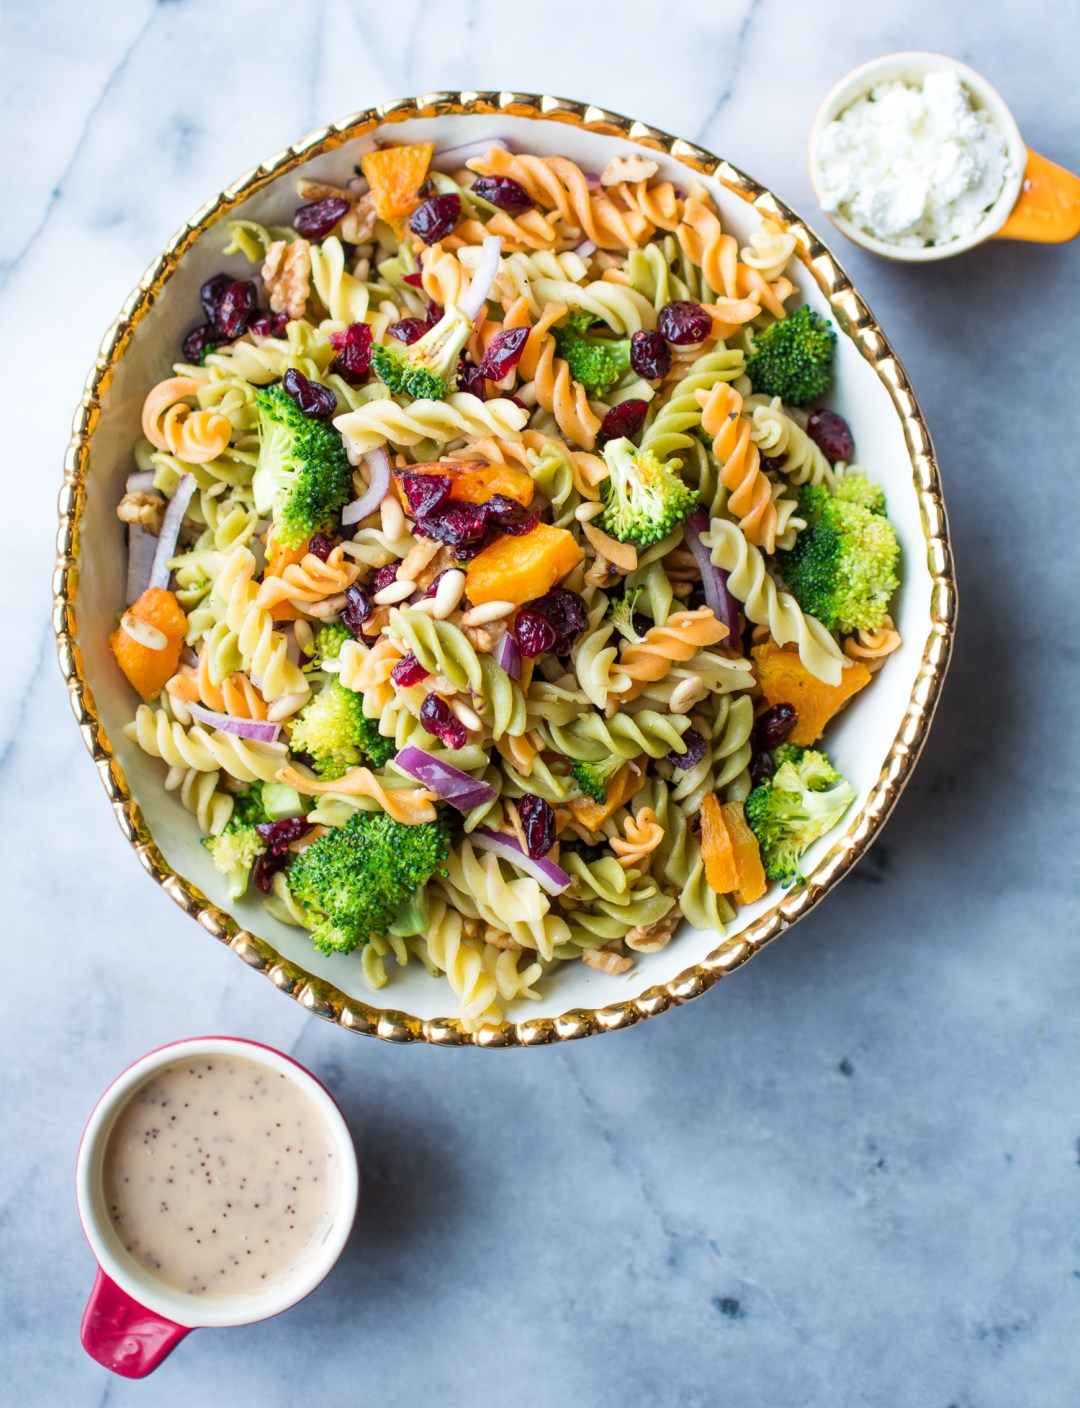 Fall Harvest Pasta Salad Recipe - Healthy - @lacegraceblog1